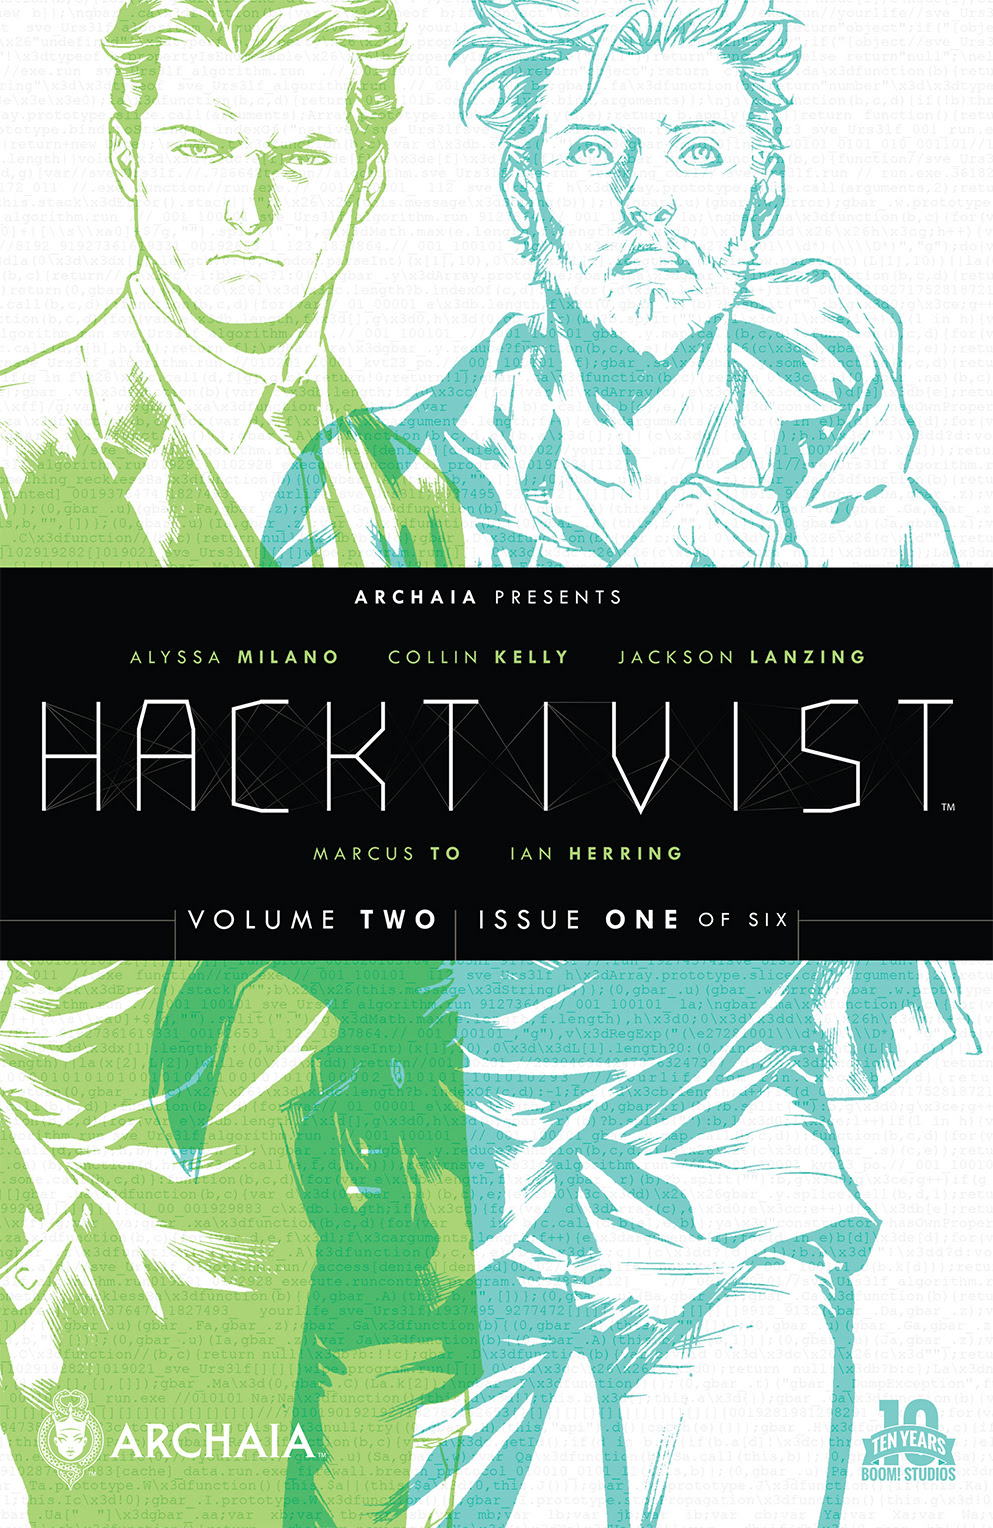 Hacktivist Vol. 2 #1 (of 6) Main Cover by Marcus To